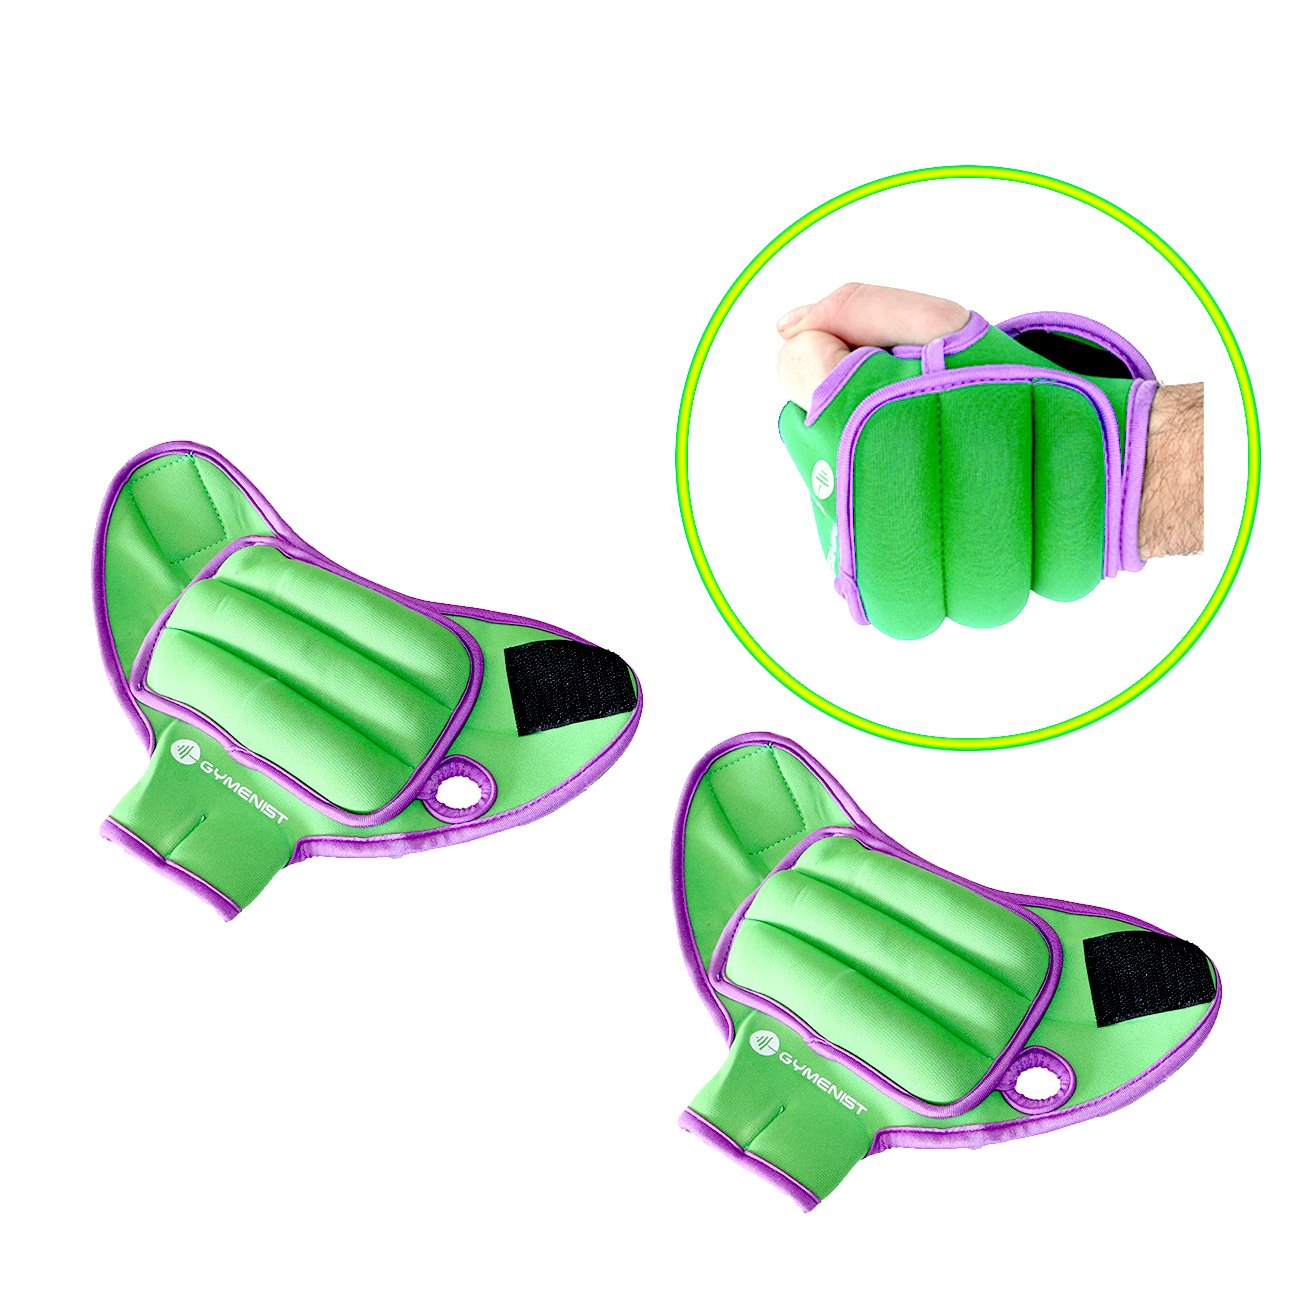 GYMENIST Pair of Glove Wrist Weights With Holes For Finger And Thumb (2 LB) by GYMENIST